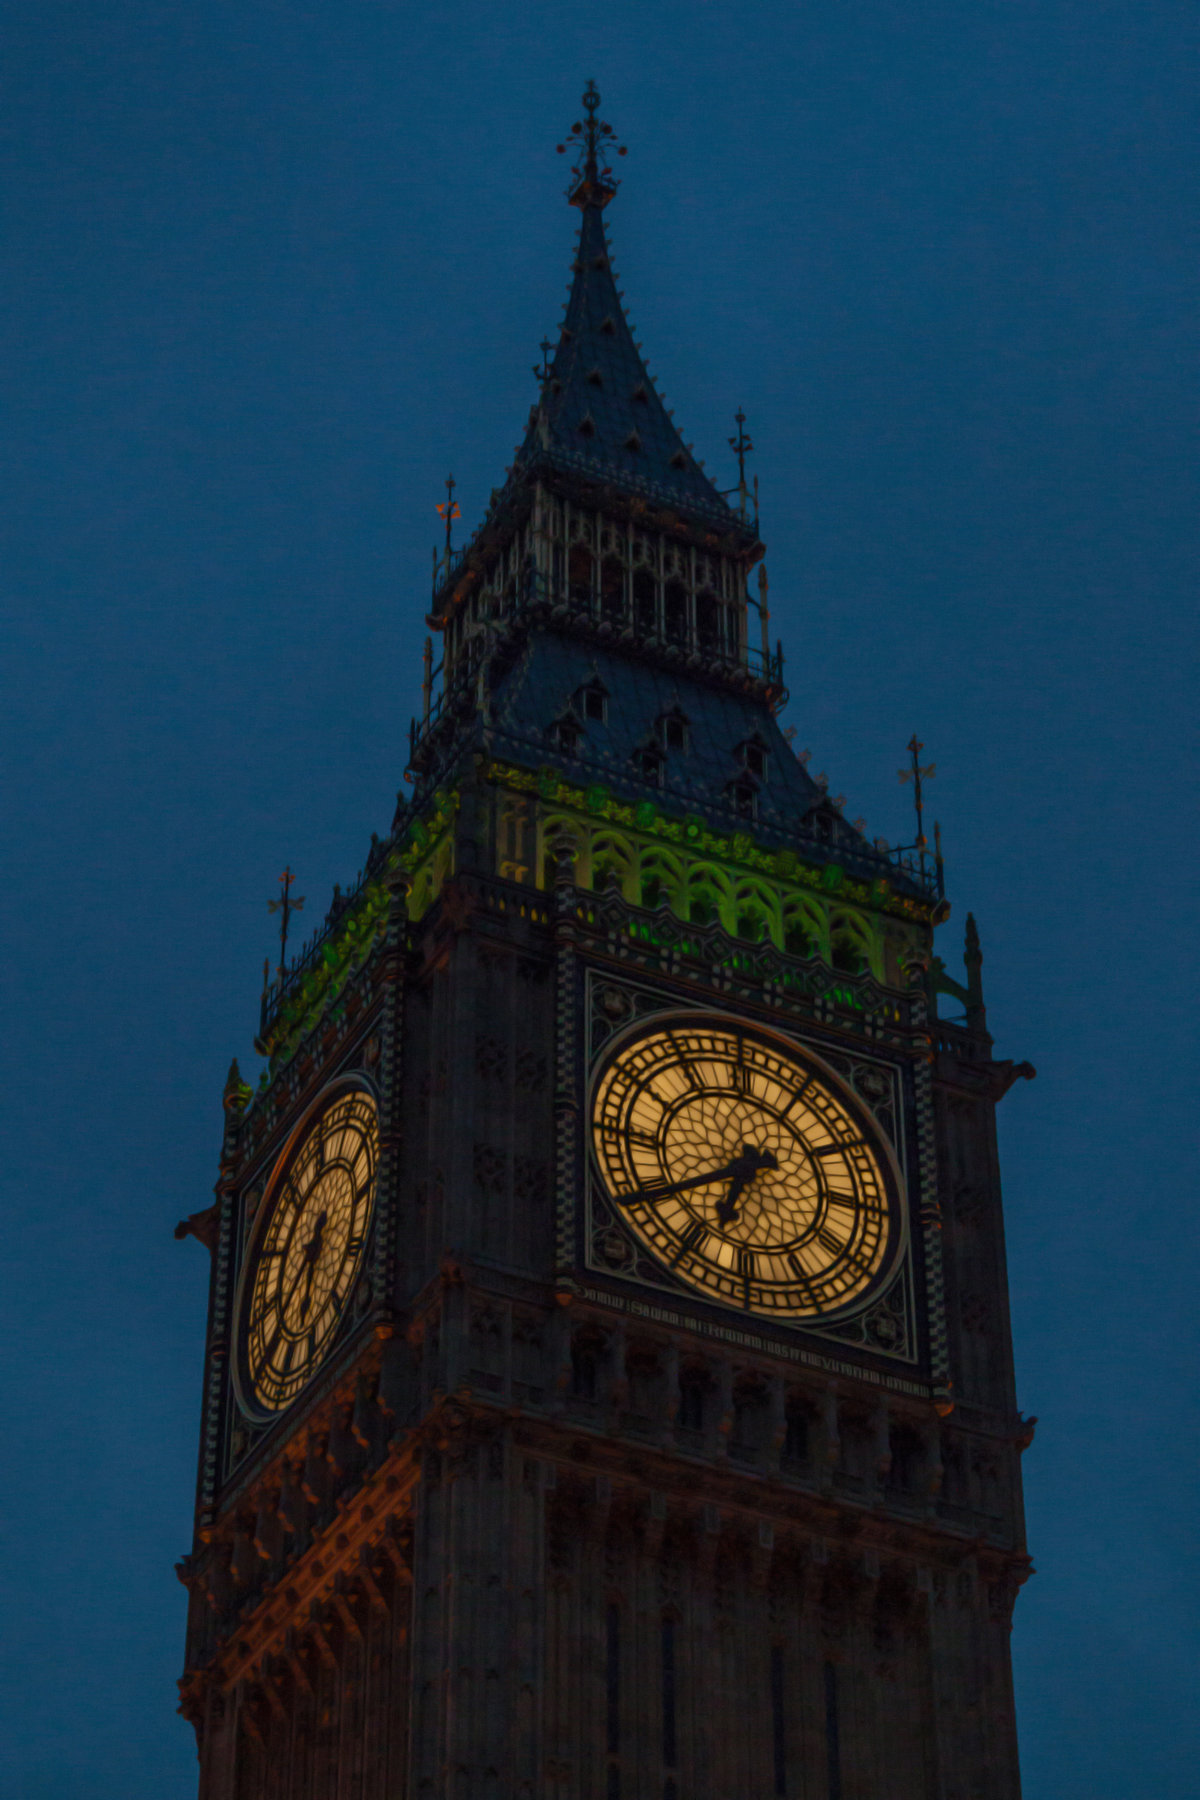 time in london - photo #8